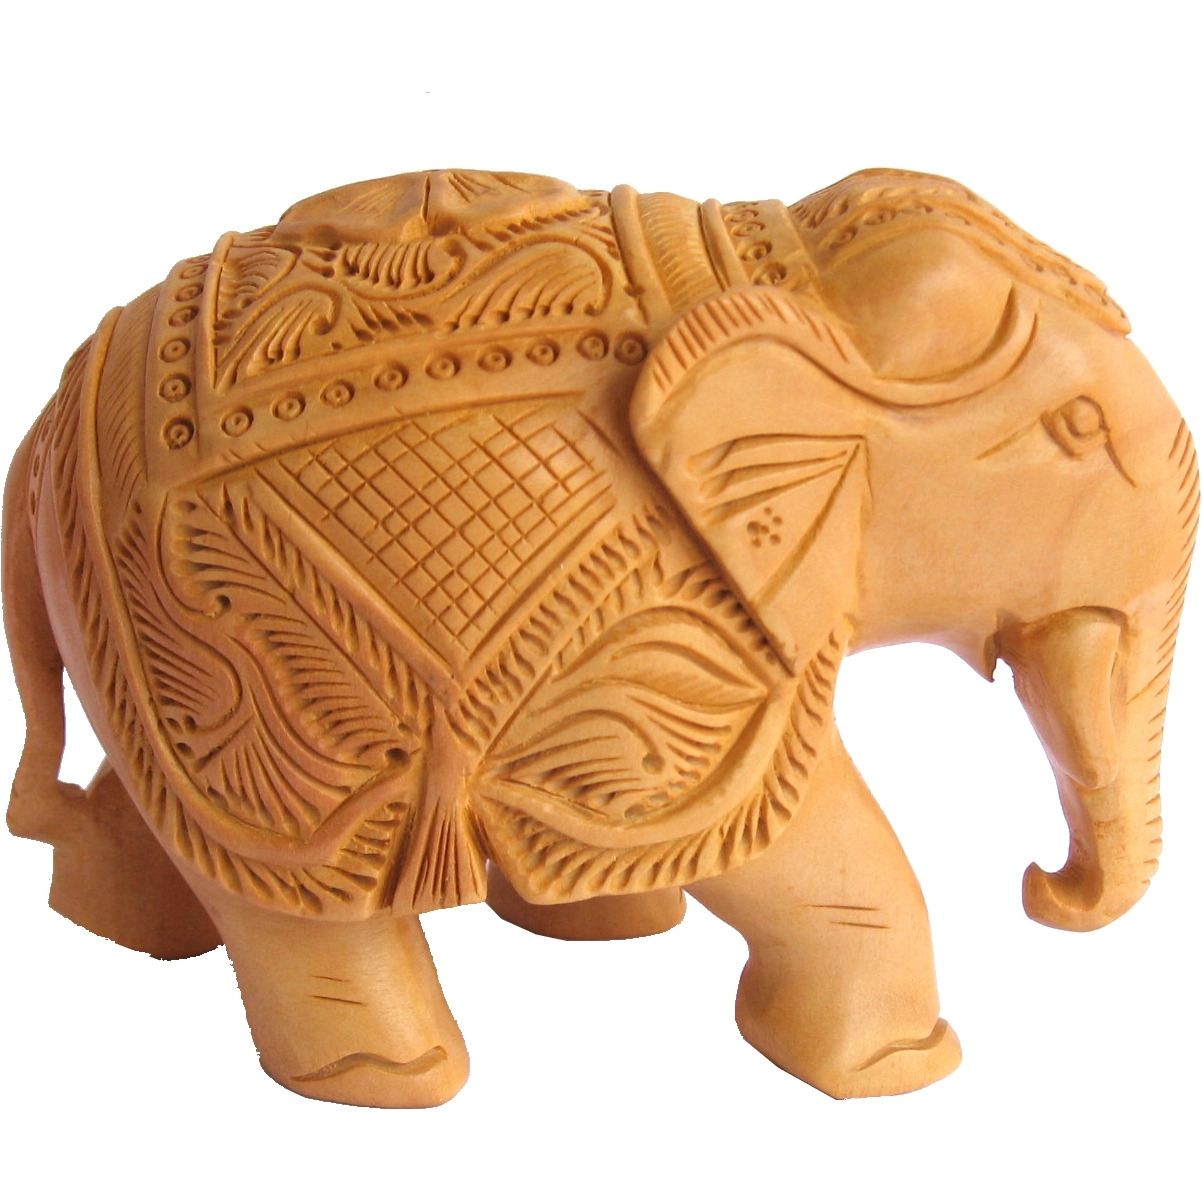 Buy Online Wooden Elephant Statue Carved Sculpture Handmade Figurine from  USA - Zifiti.com - Page